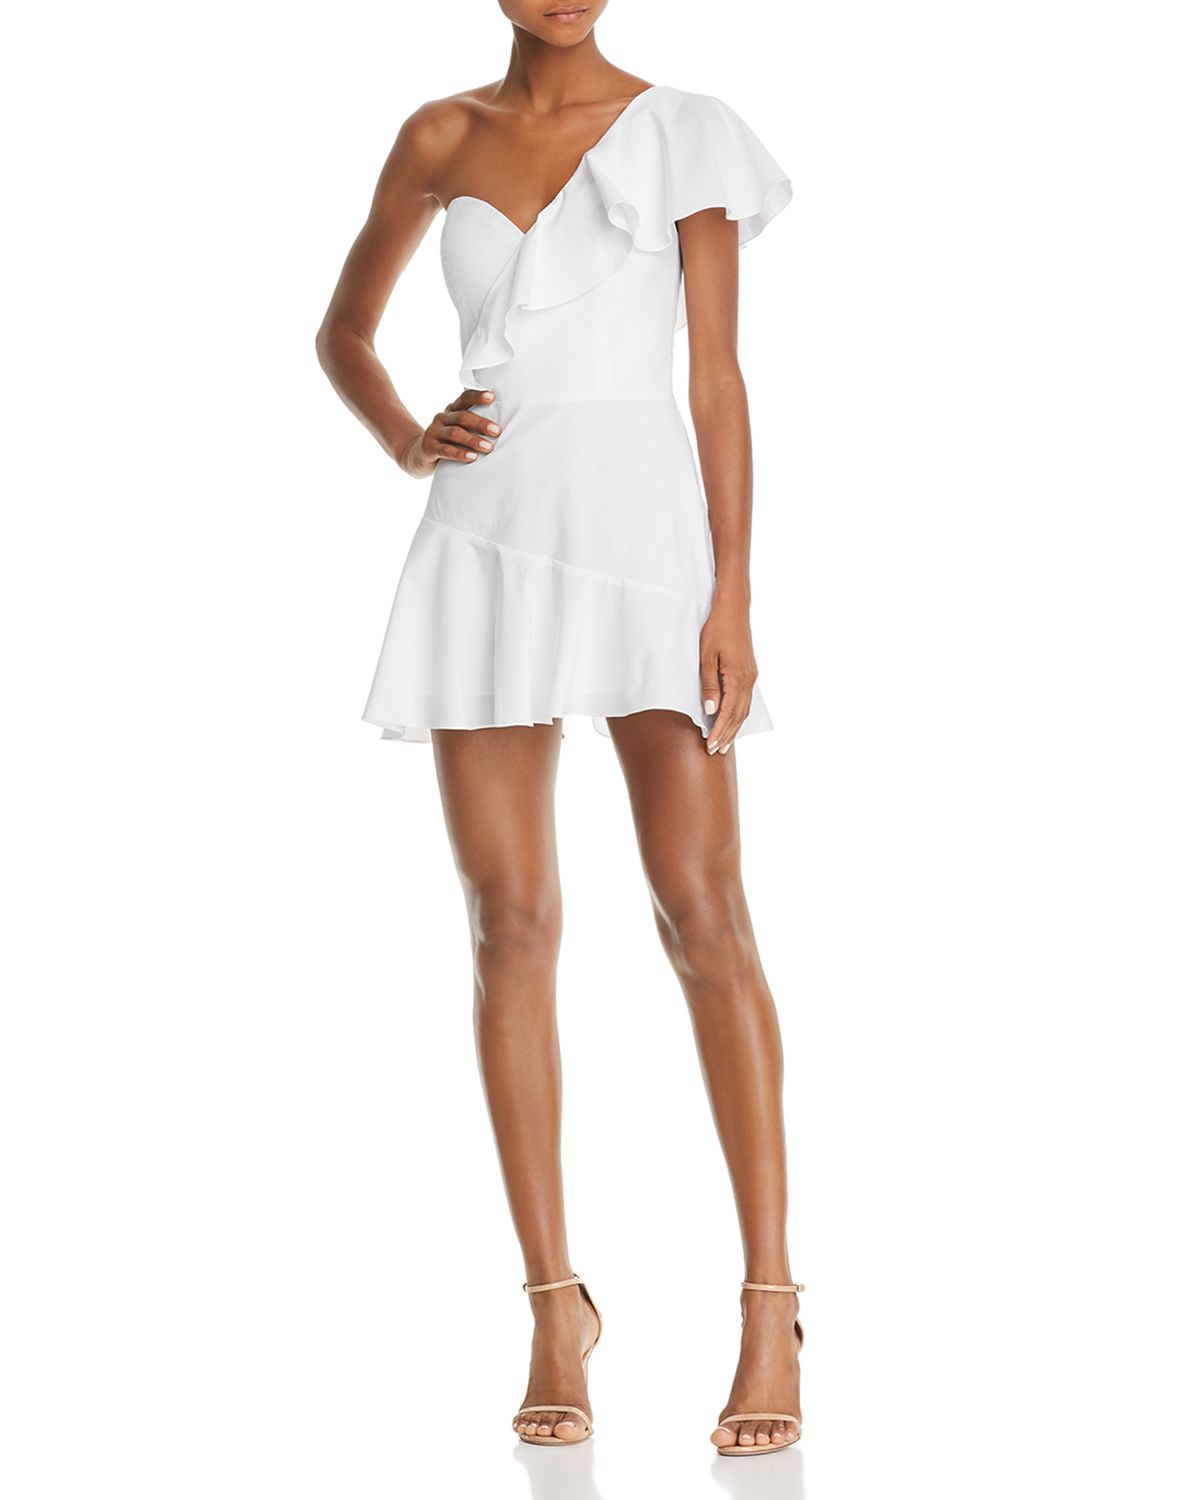 Vanderbilt Ruffled One Shoulder Mini Dress by Amanda Uprichard